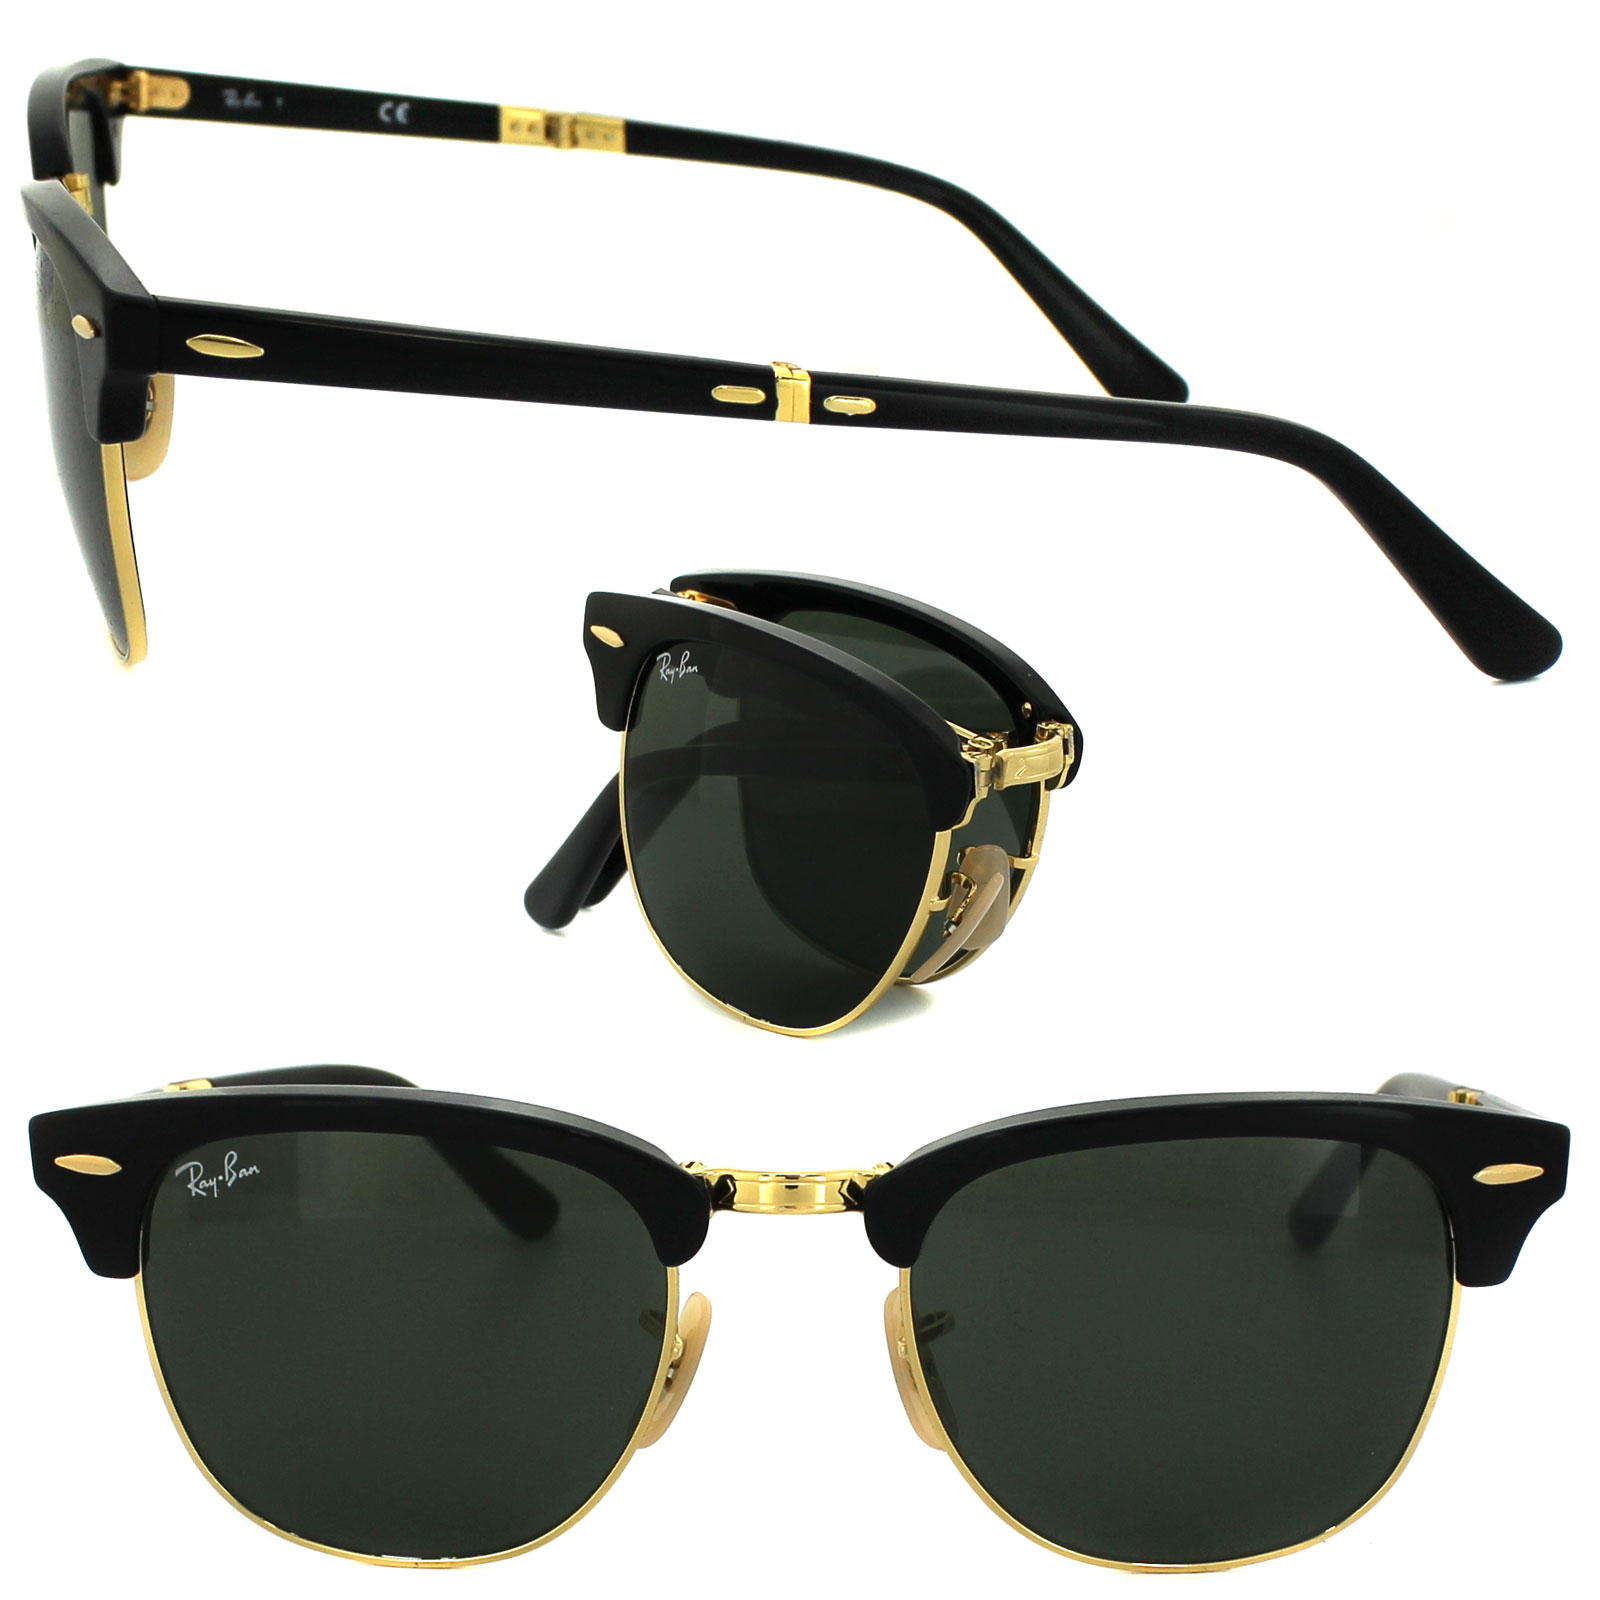 cheap ray ban clubmaster folding 2176 sunglasses discounted sunglasses. Black Bedroom Furniture Sets. Home Design Ideas